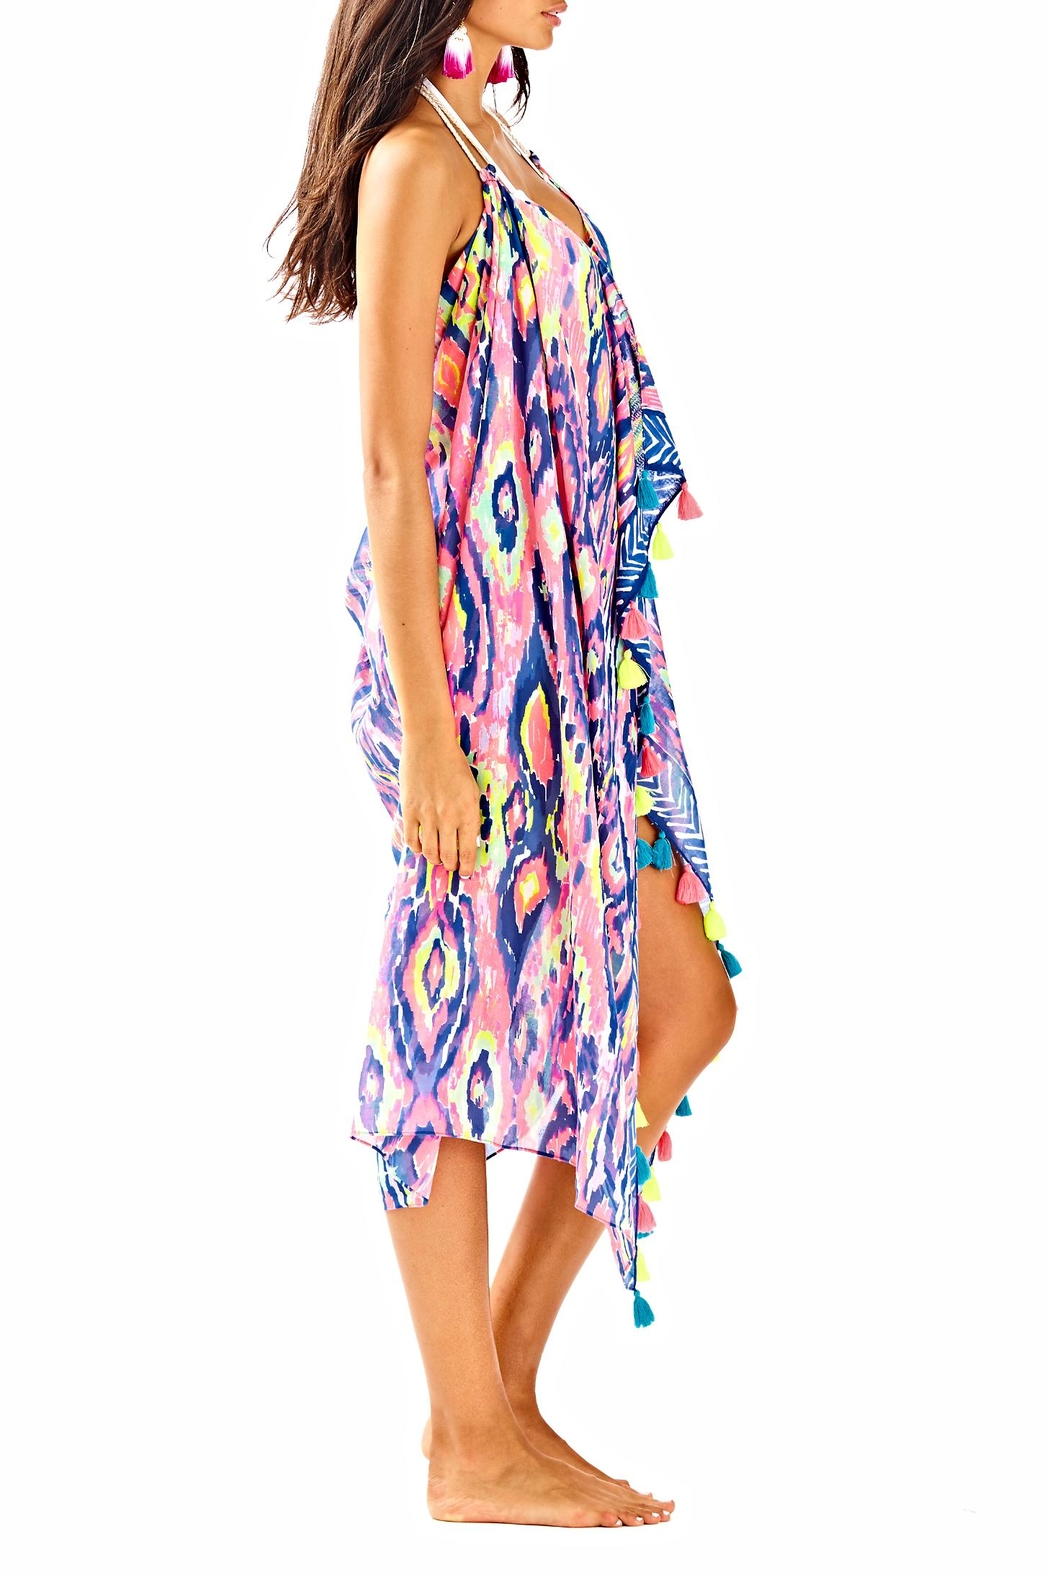 a0e3eb913c Lilly Pulitzer Gypsy Beach Cover Up from Sandestin Golf and Beach ...